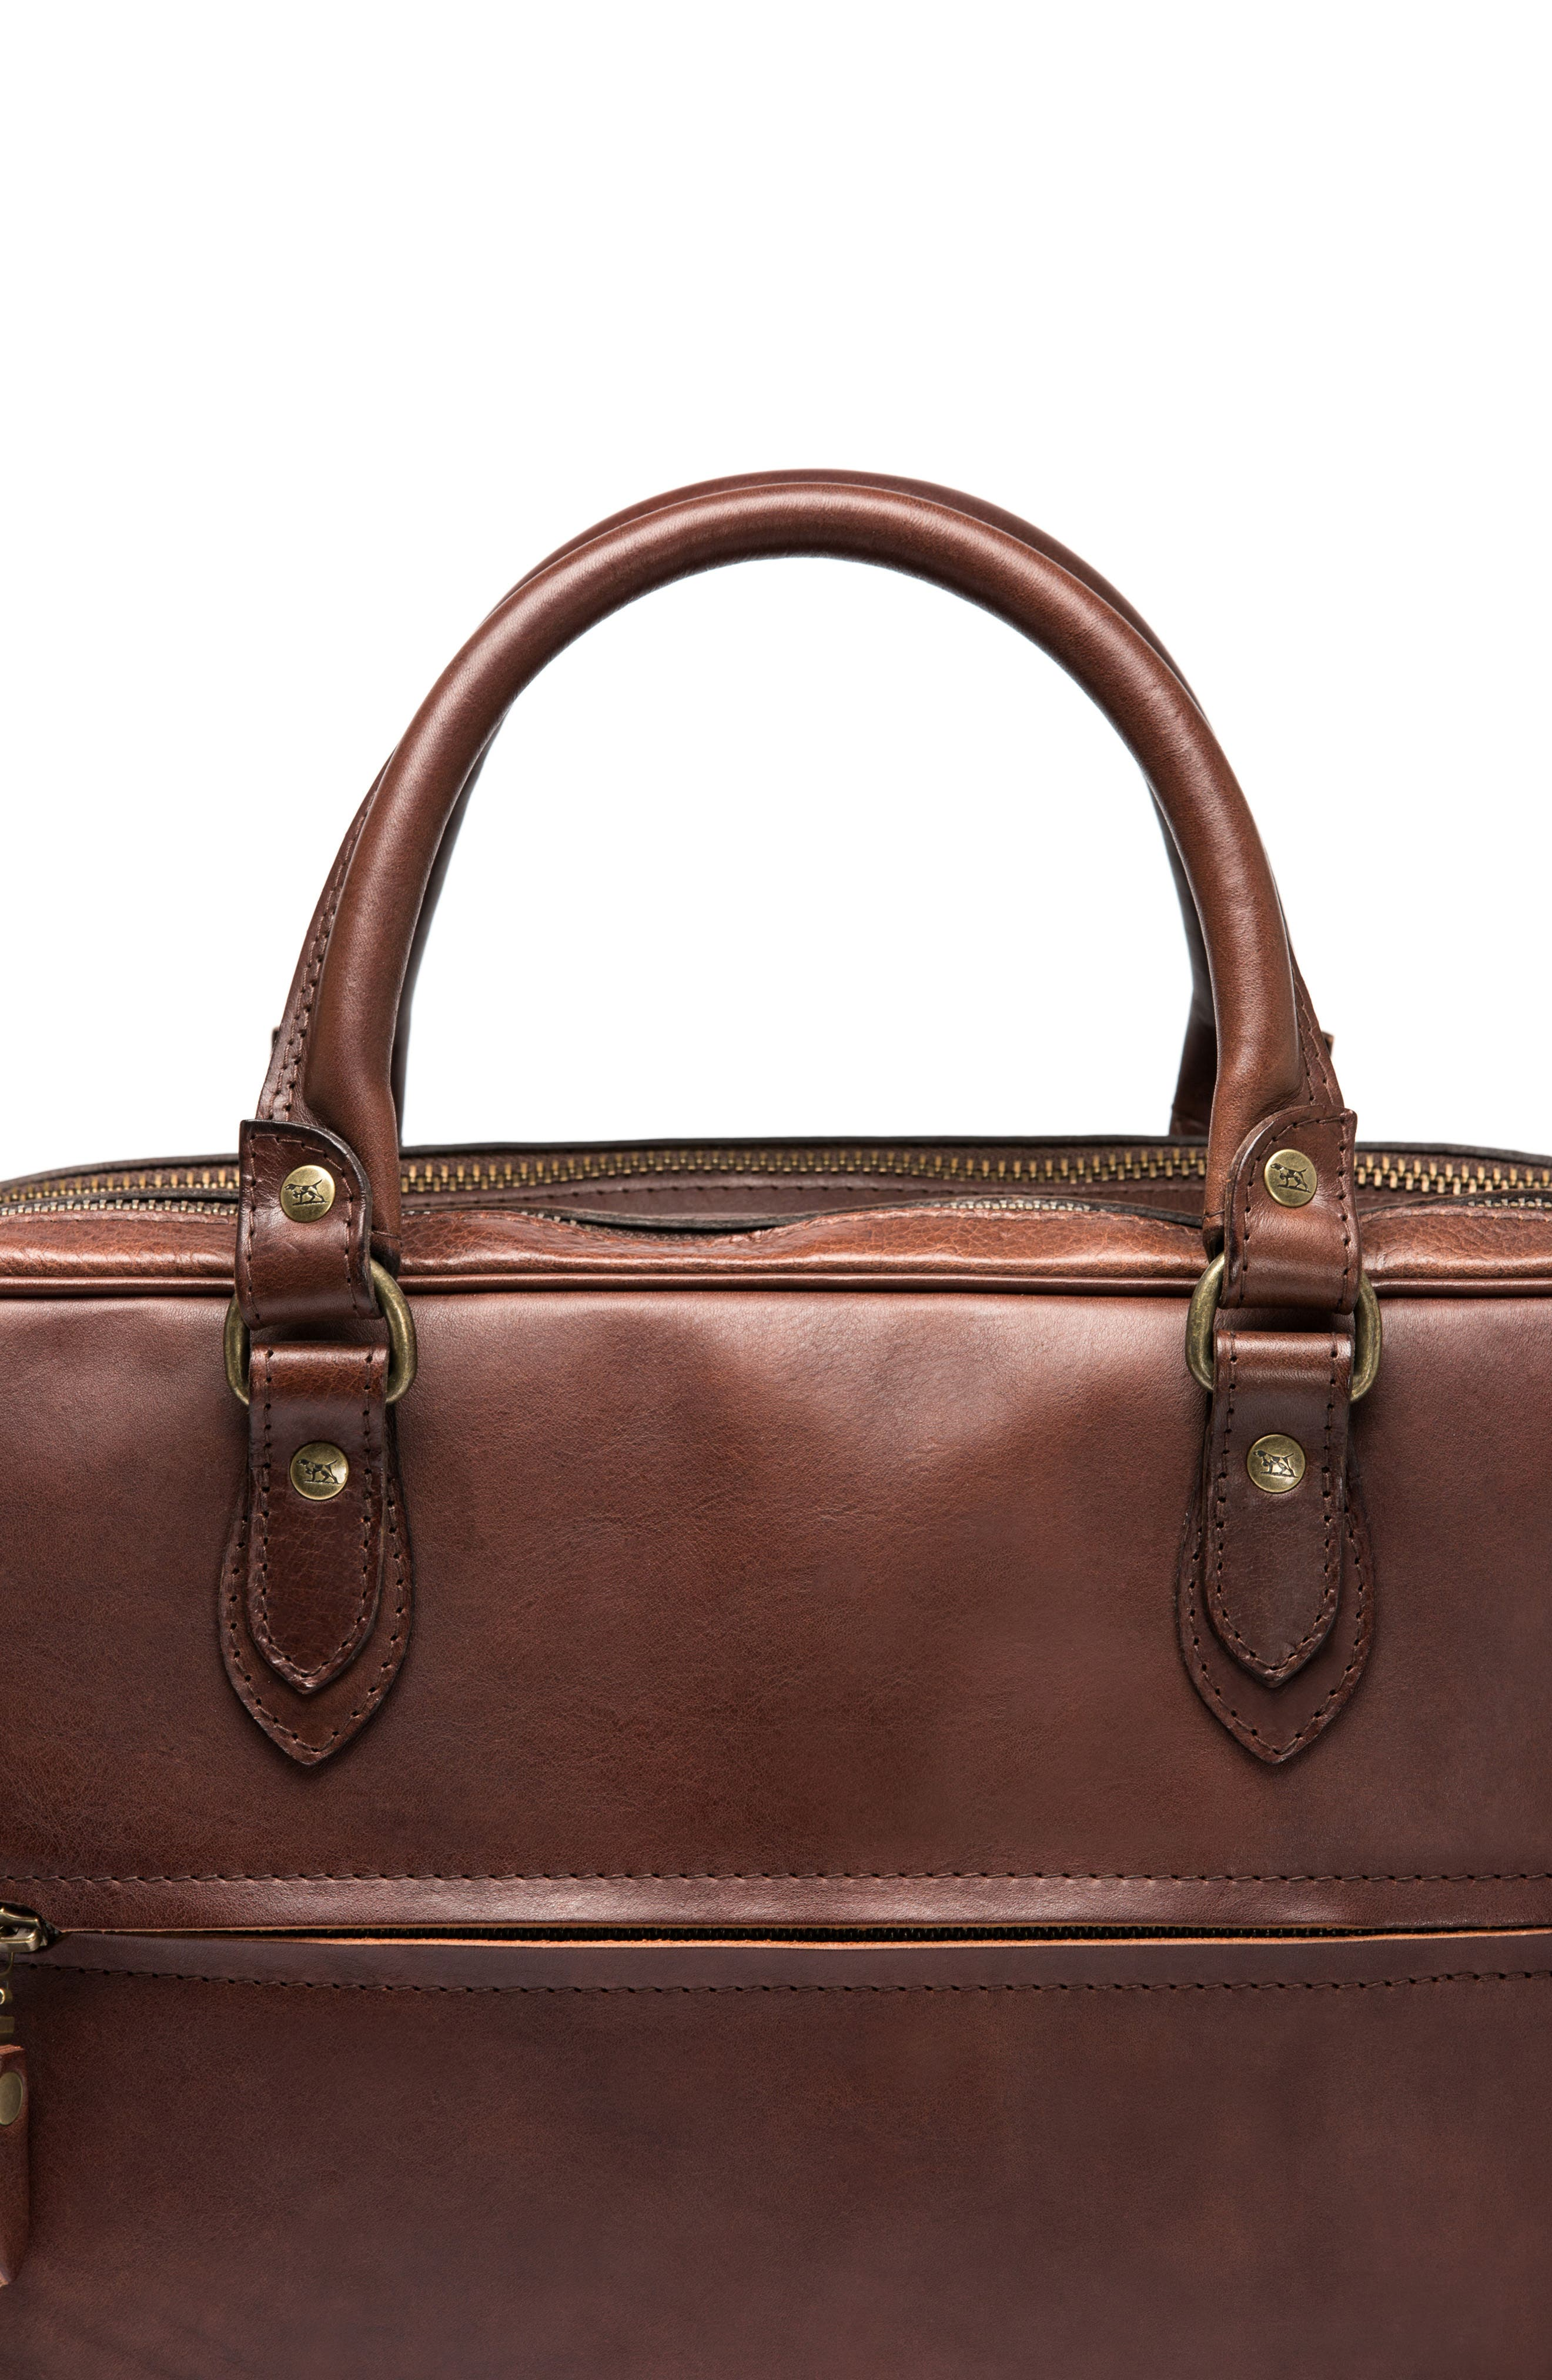 Britomart Leather Briefcase,                             Alternate thumbnail 8, color,                             Mud